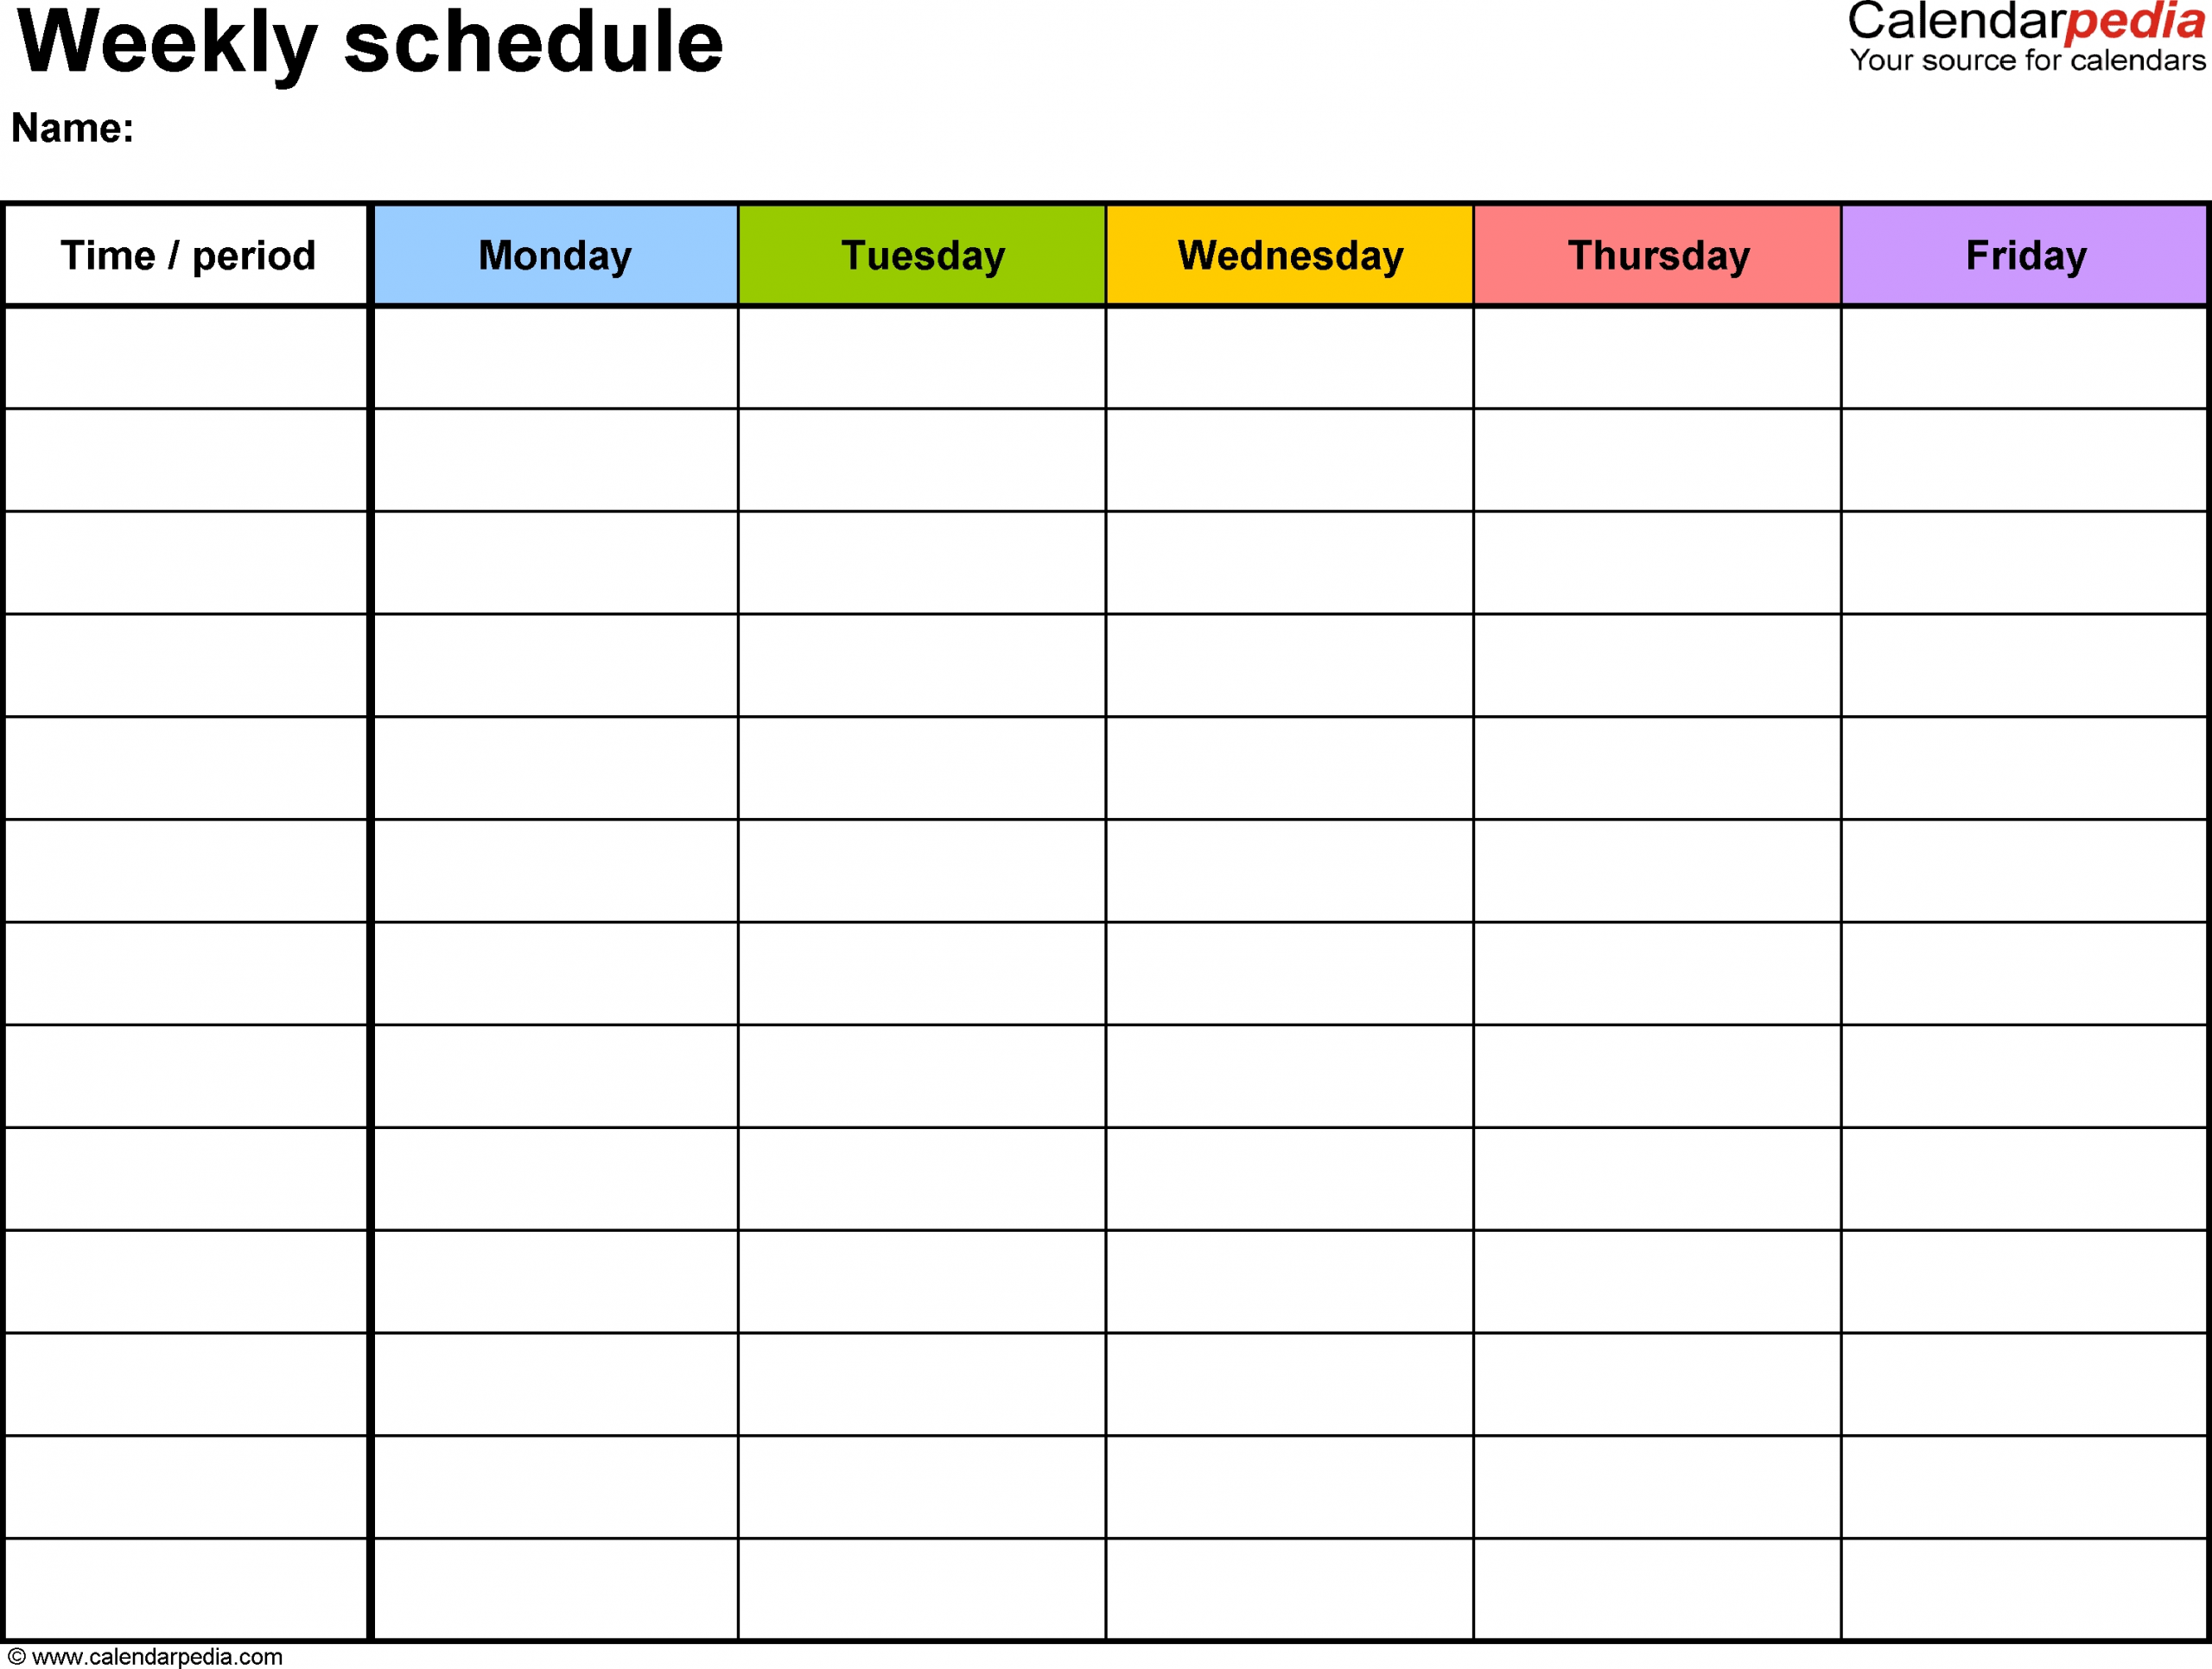 One Week Calendar Template With Hours - Calendar 1 Week Calendar Template